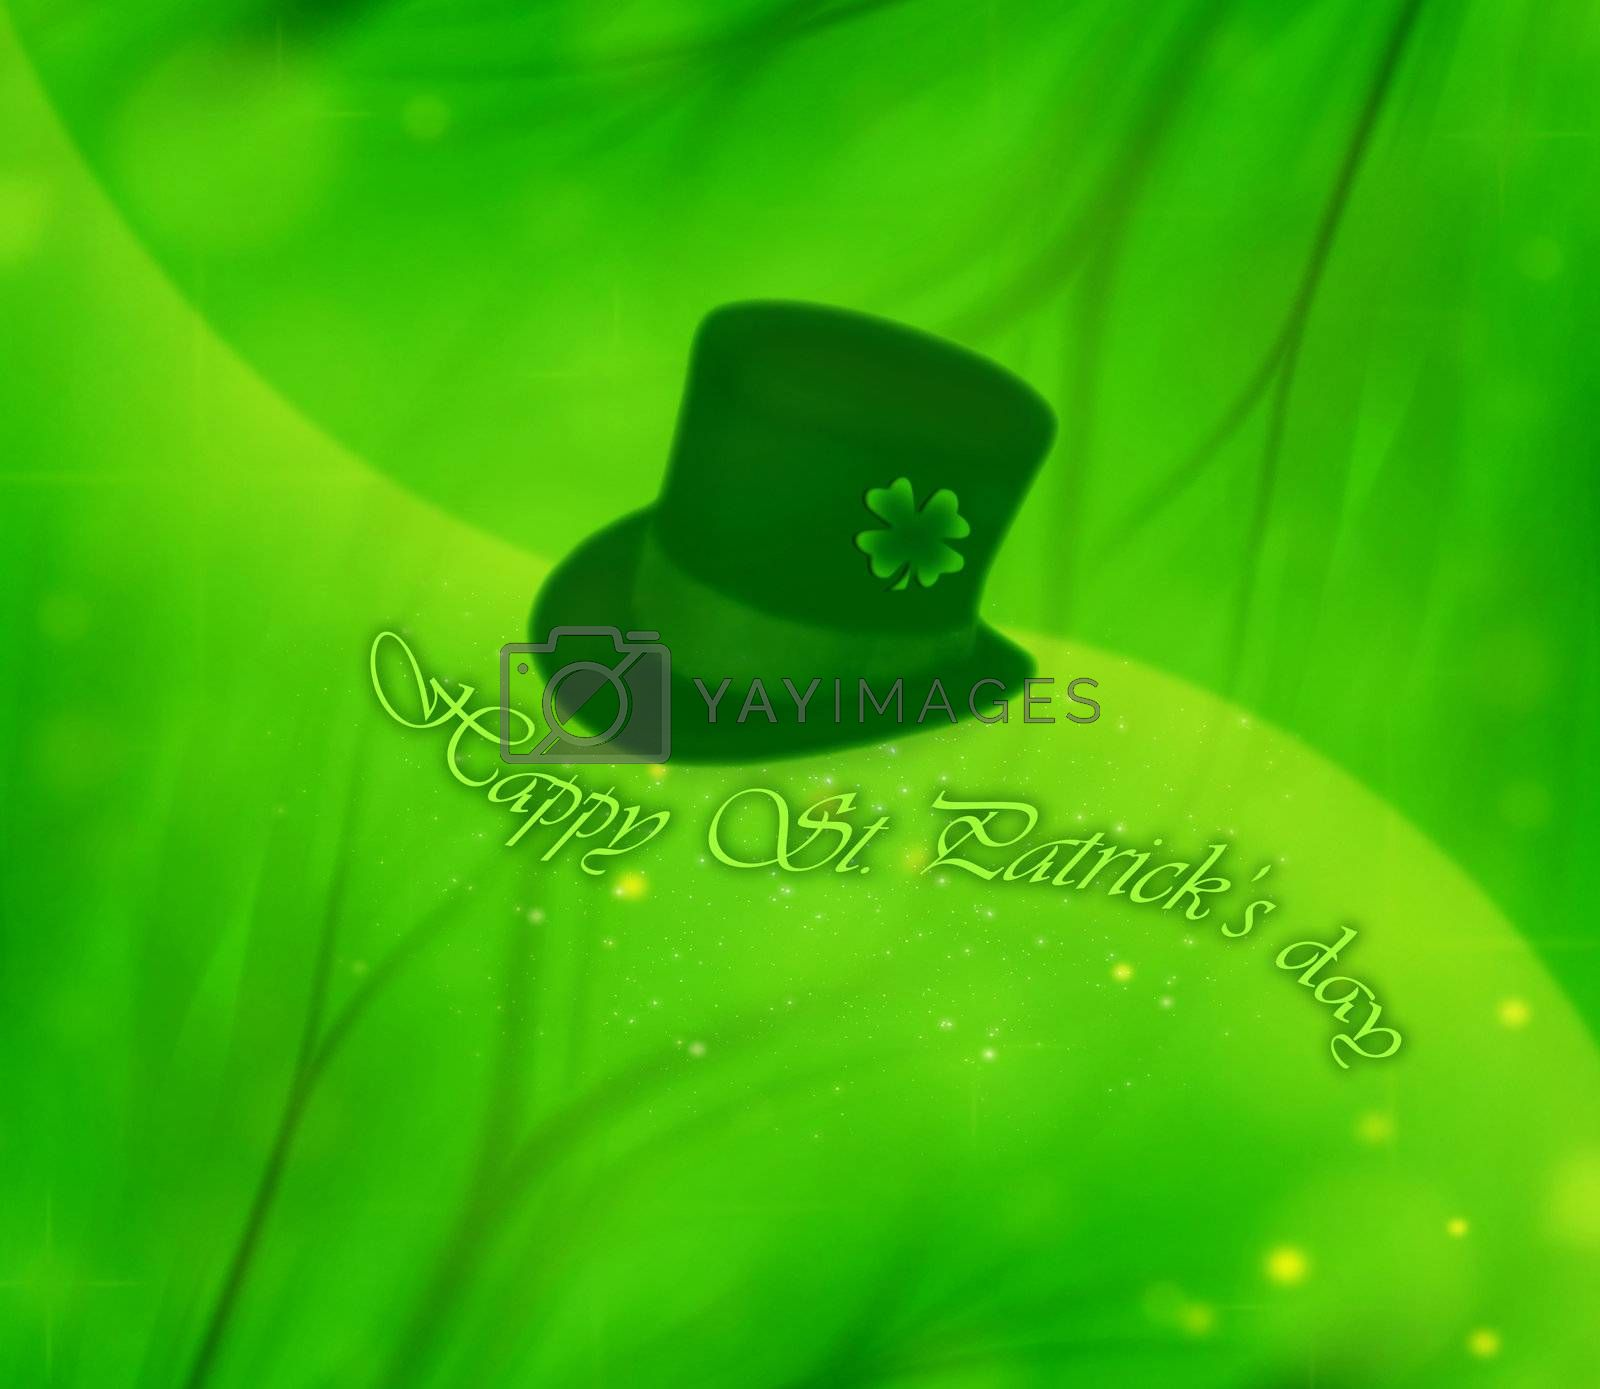 Green clover holiday bachground collage, st.Patrick's day decoration, leprechaun's hat